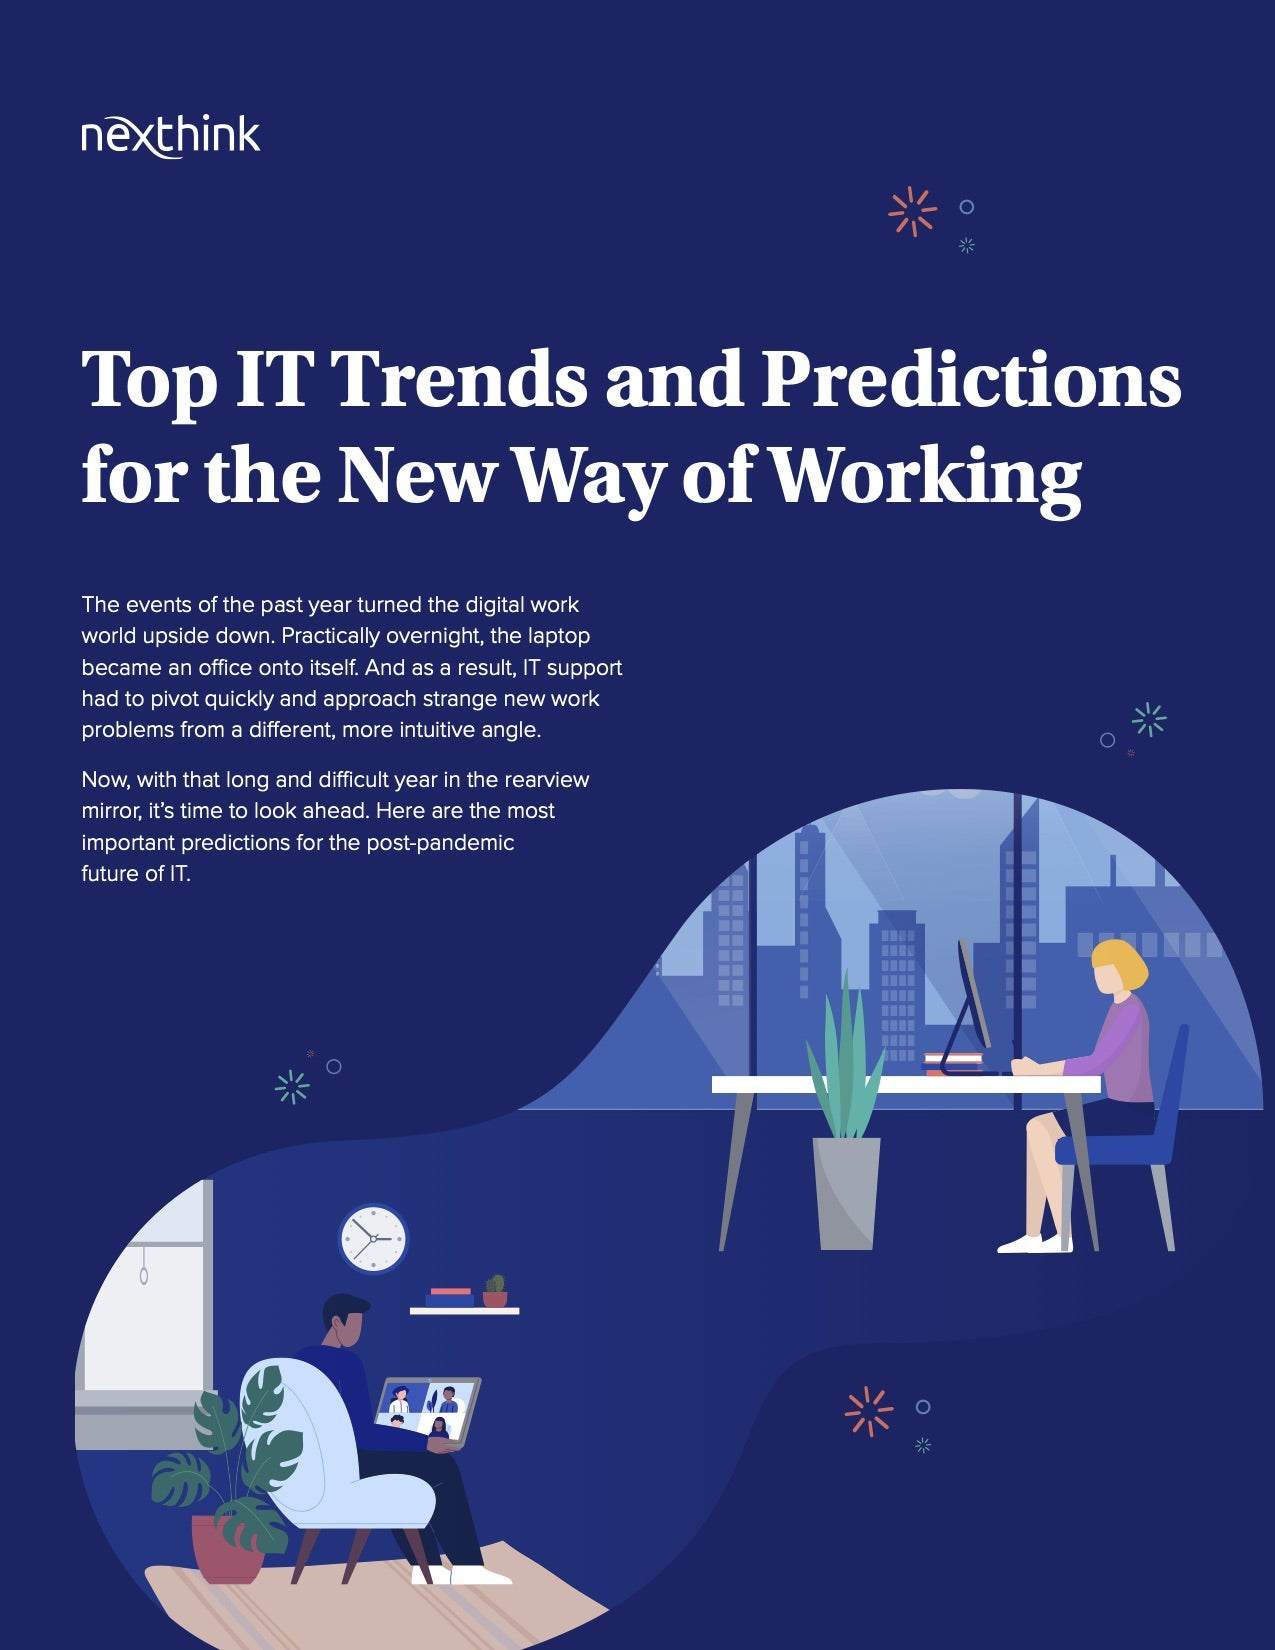 Top IT Trends and Predictions for the New Way of Working